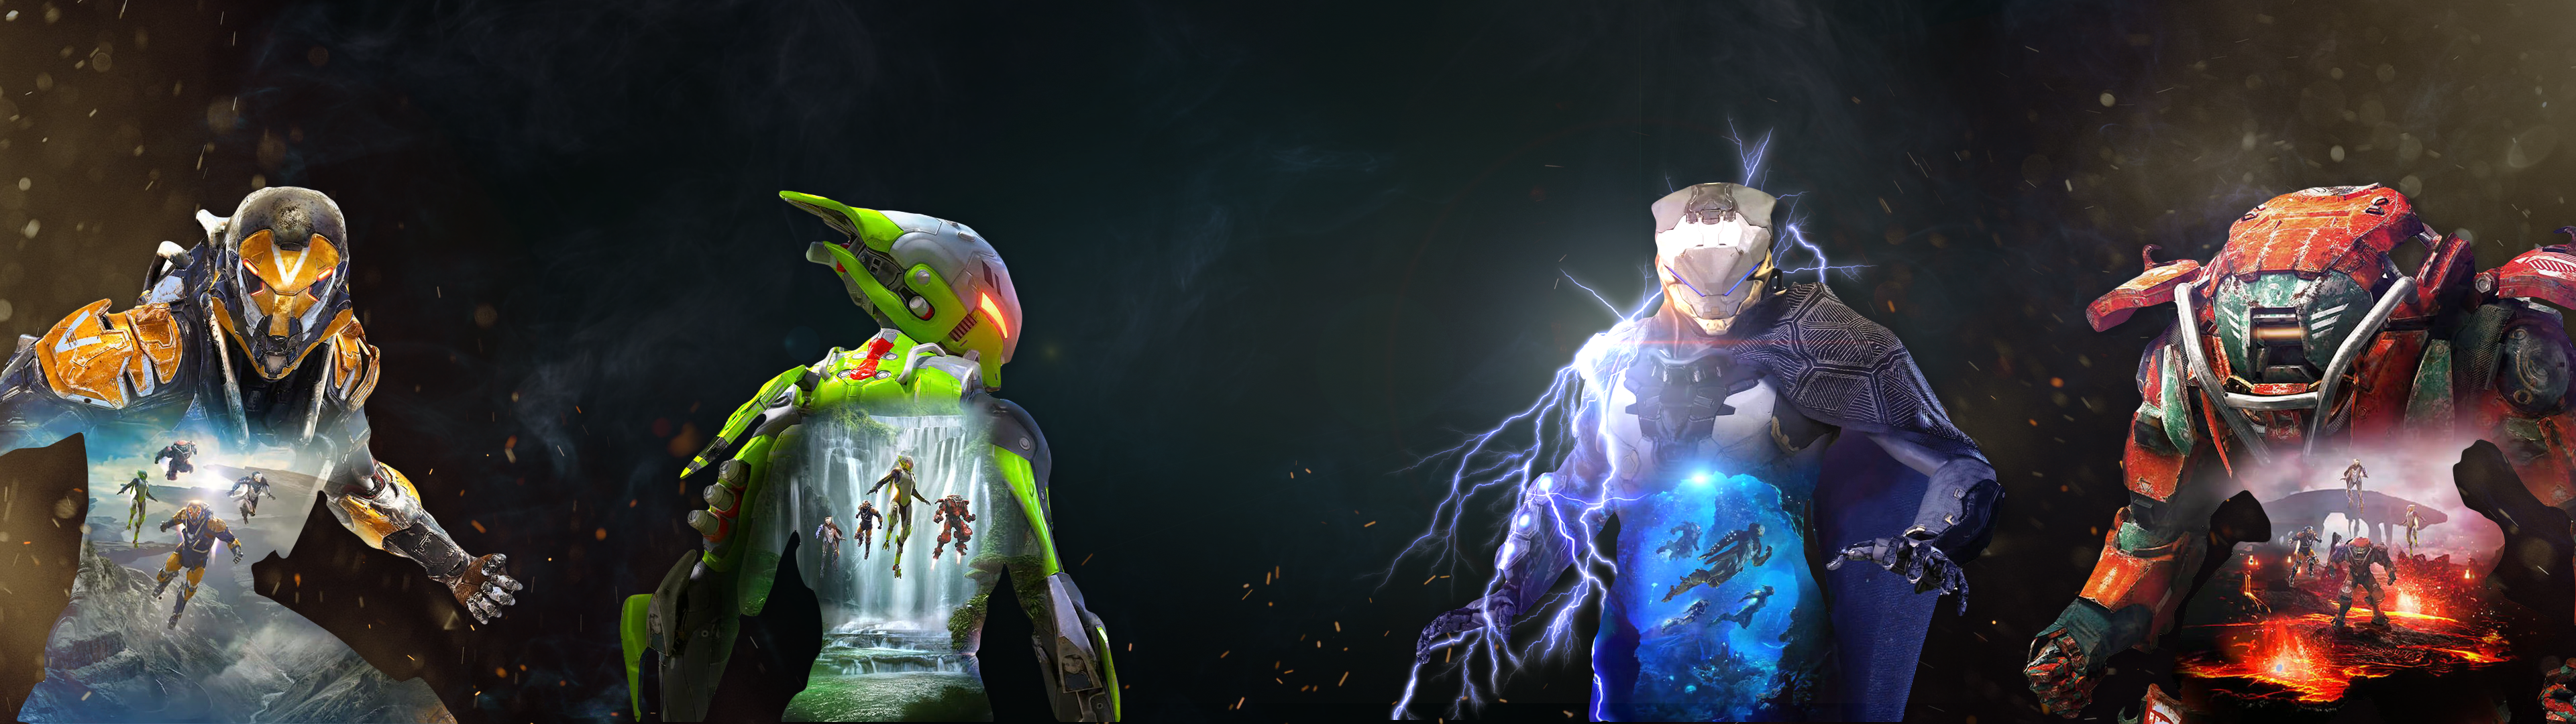 Anthem Javelins Dual Monitor Wallpaper 3840x1080 Character